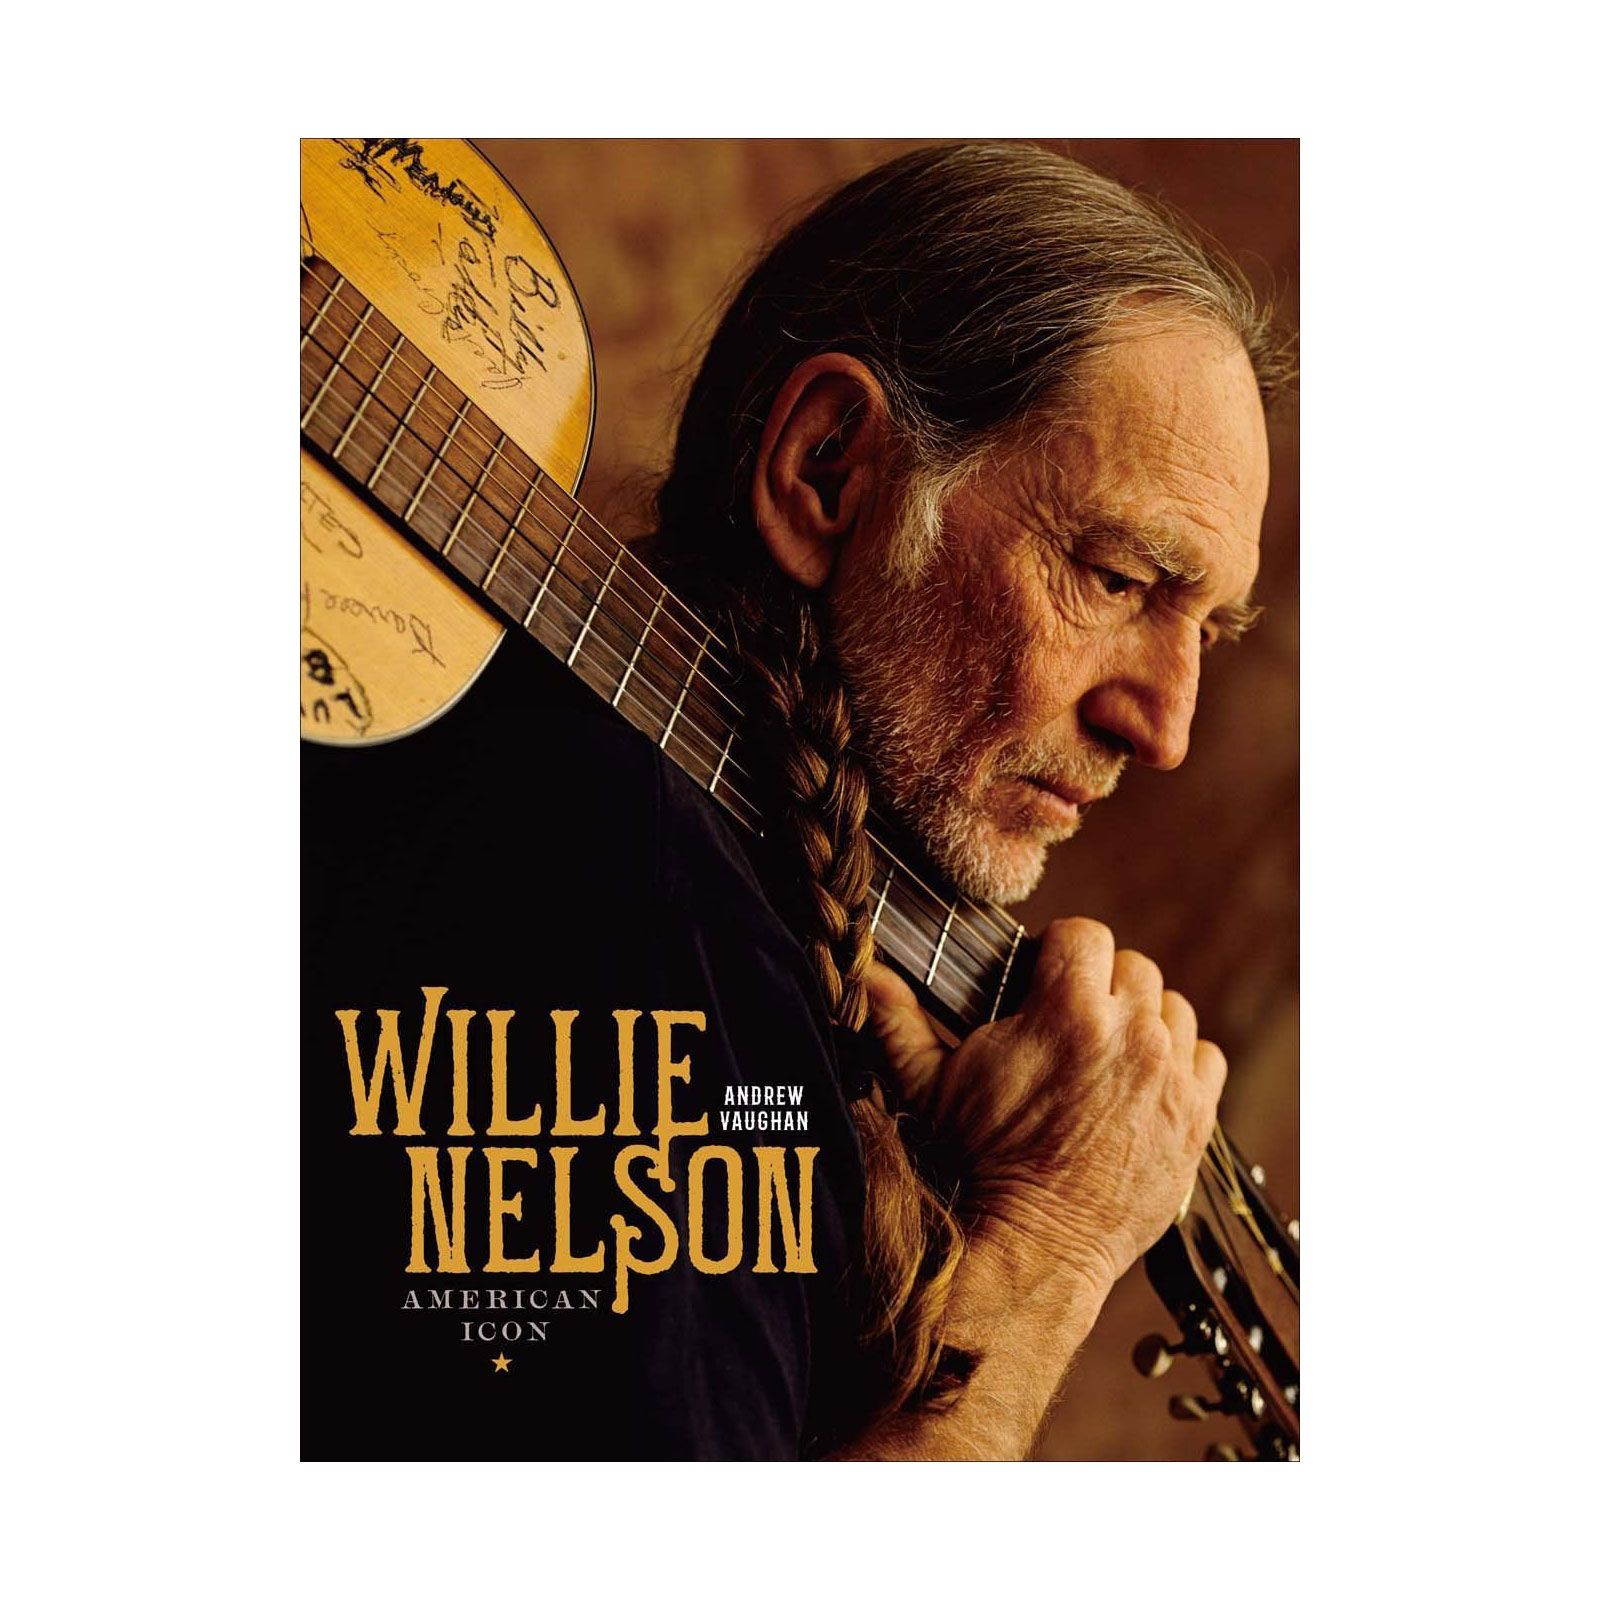 Willie Nelson: American Icon